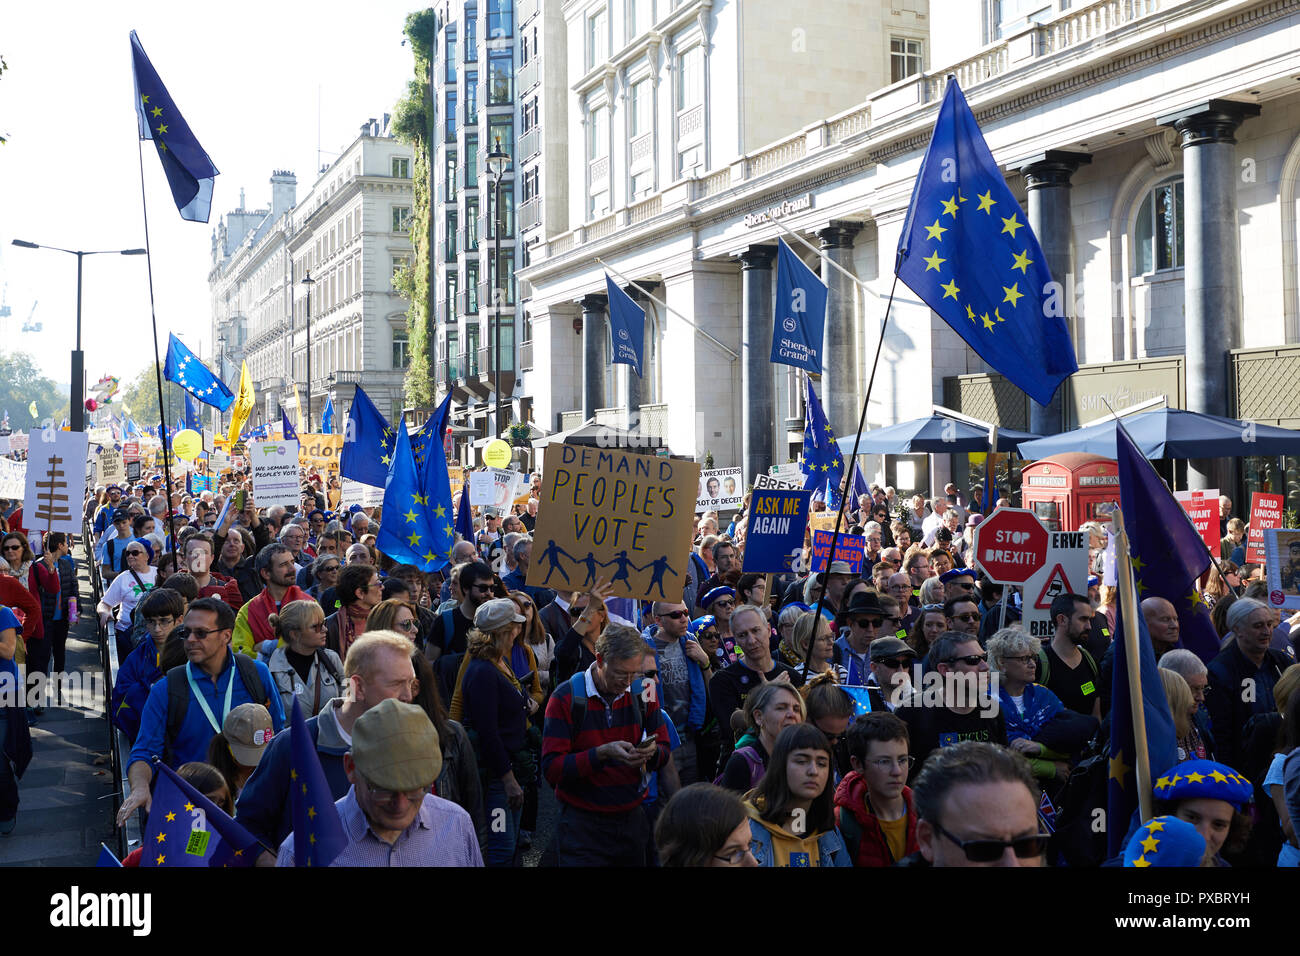 London, UK. 20th Oct, 2018. Protestors on the People's Vote march through the centre of London. Credit: Kevin J. Frost/Alamy Live News - Stock Image